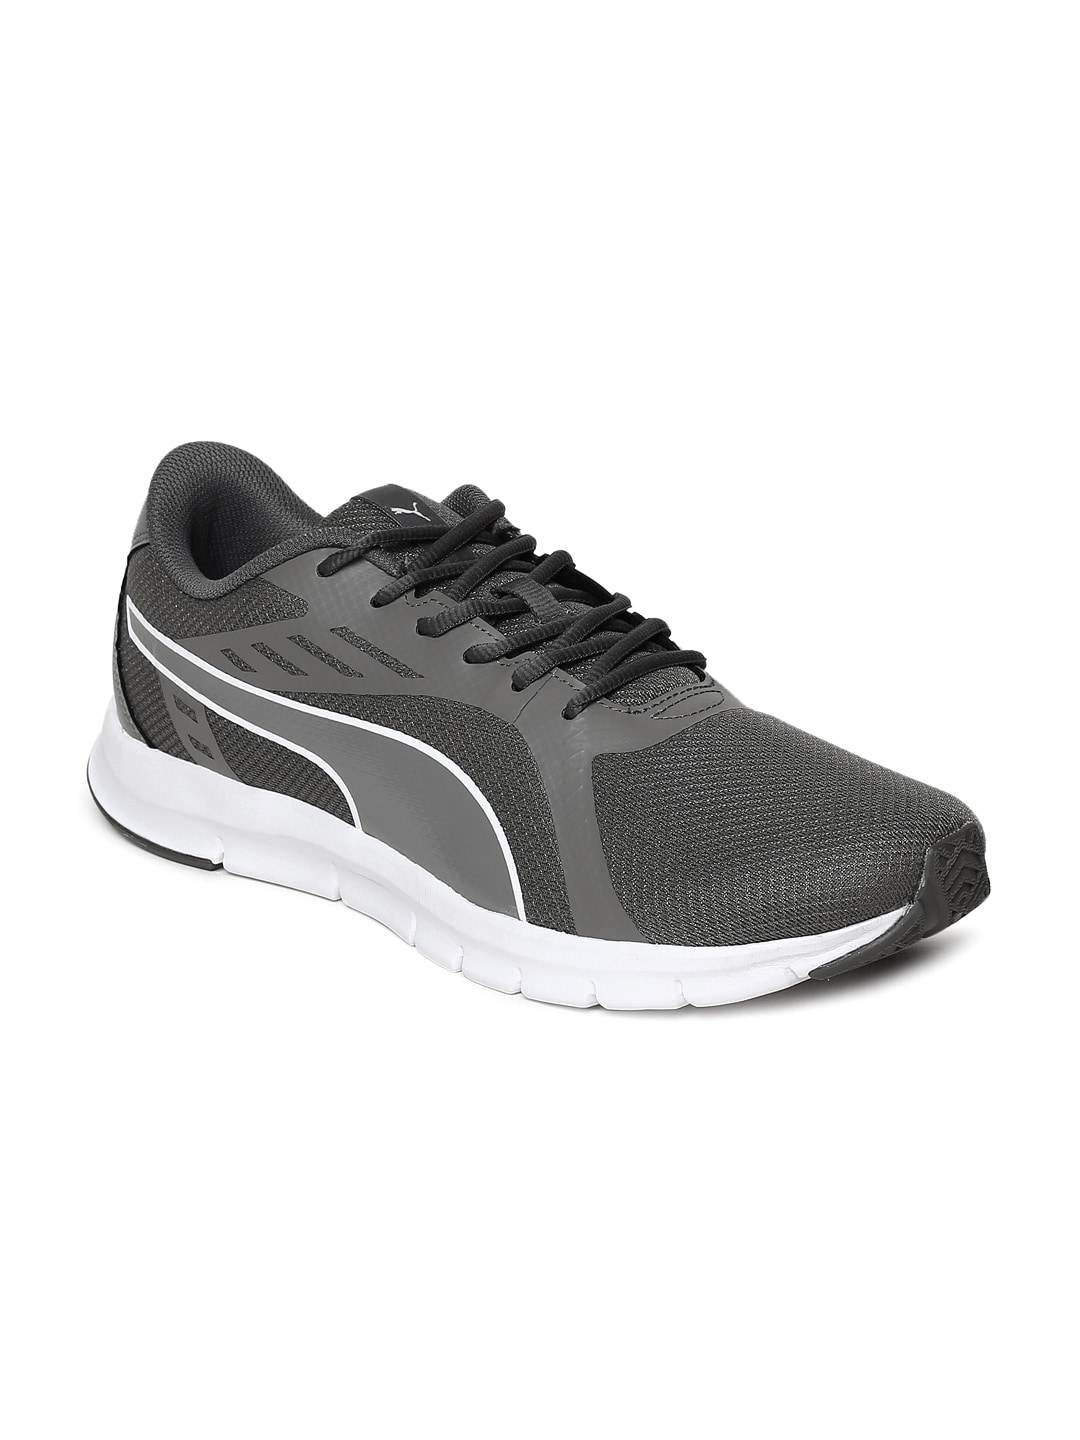 9f08a69048 Puma Shoes - Buy Puma Shoes for Men   Women Online in India